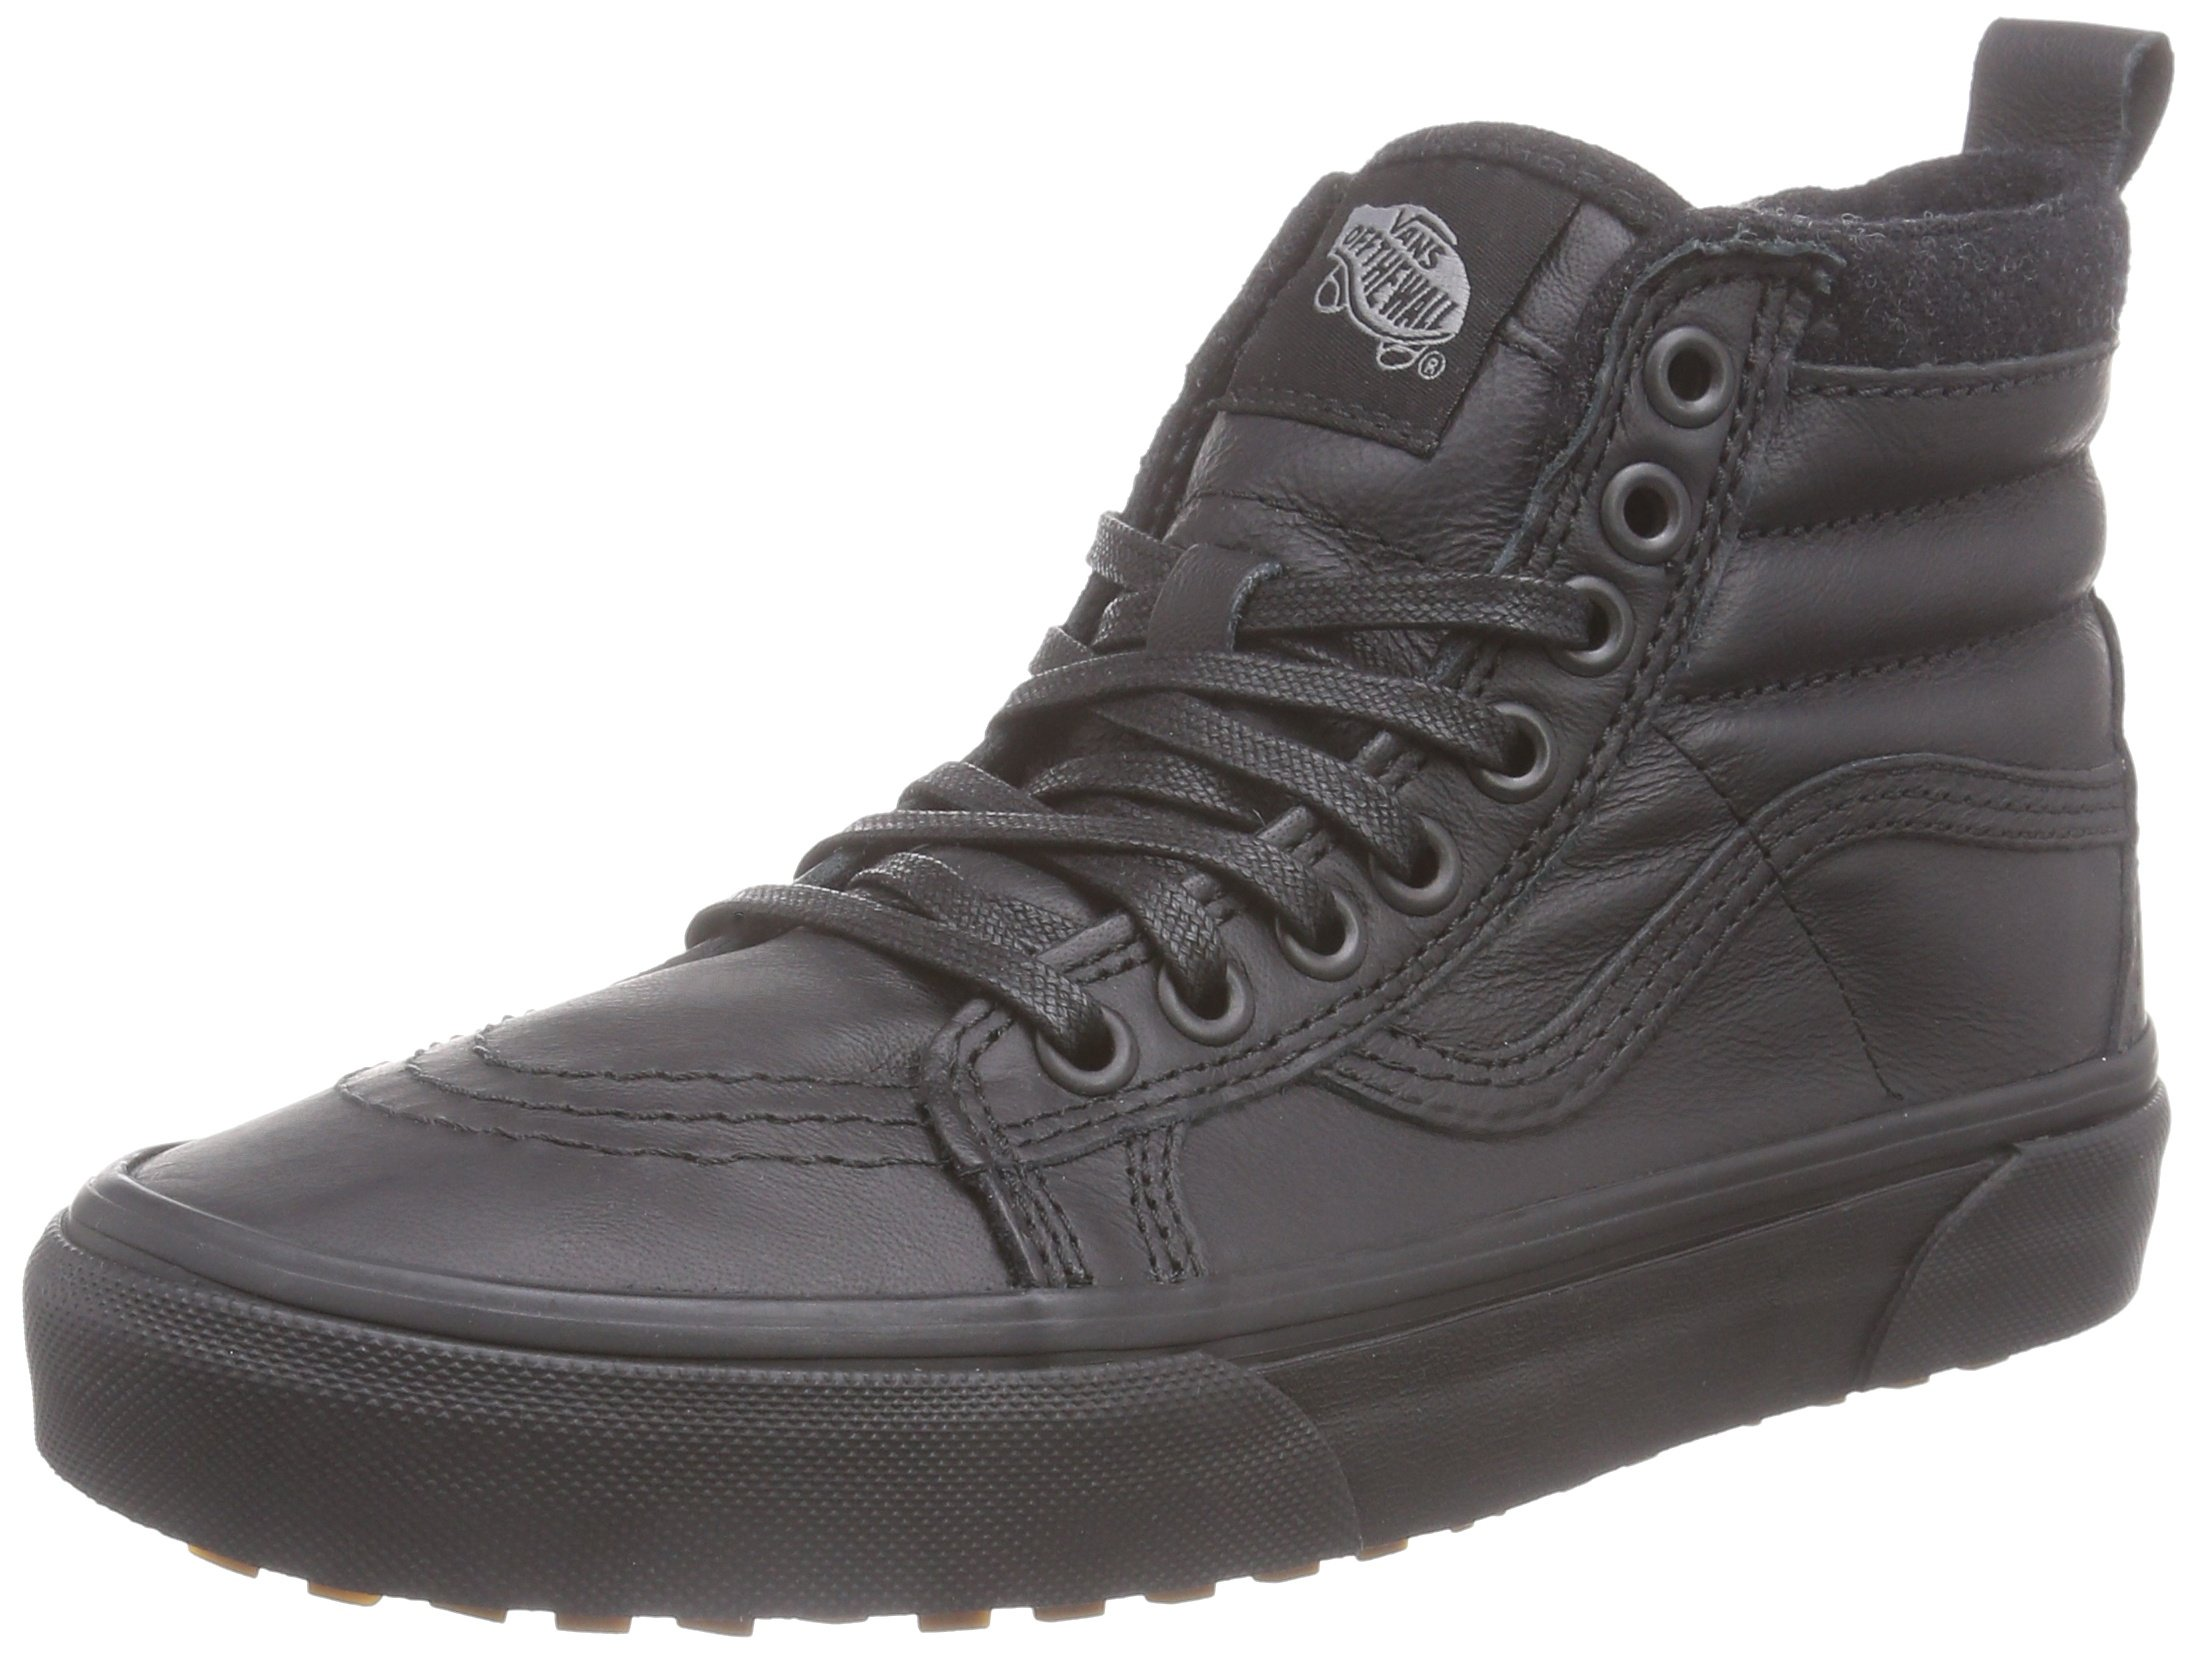 Vans Unisex SK8-Hi MTE (Mte) Black/Leather 8.5 Women / 7 Men M US by Vans